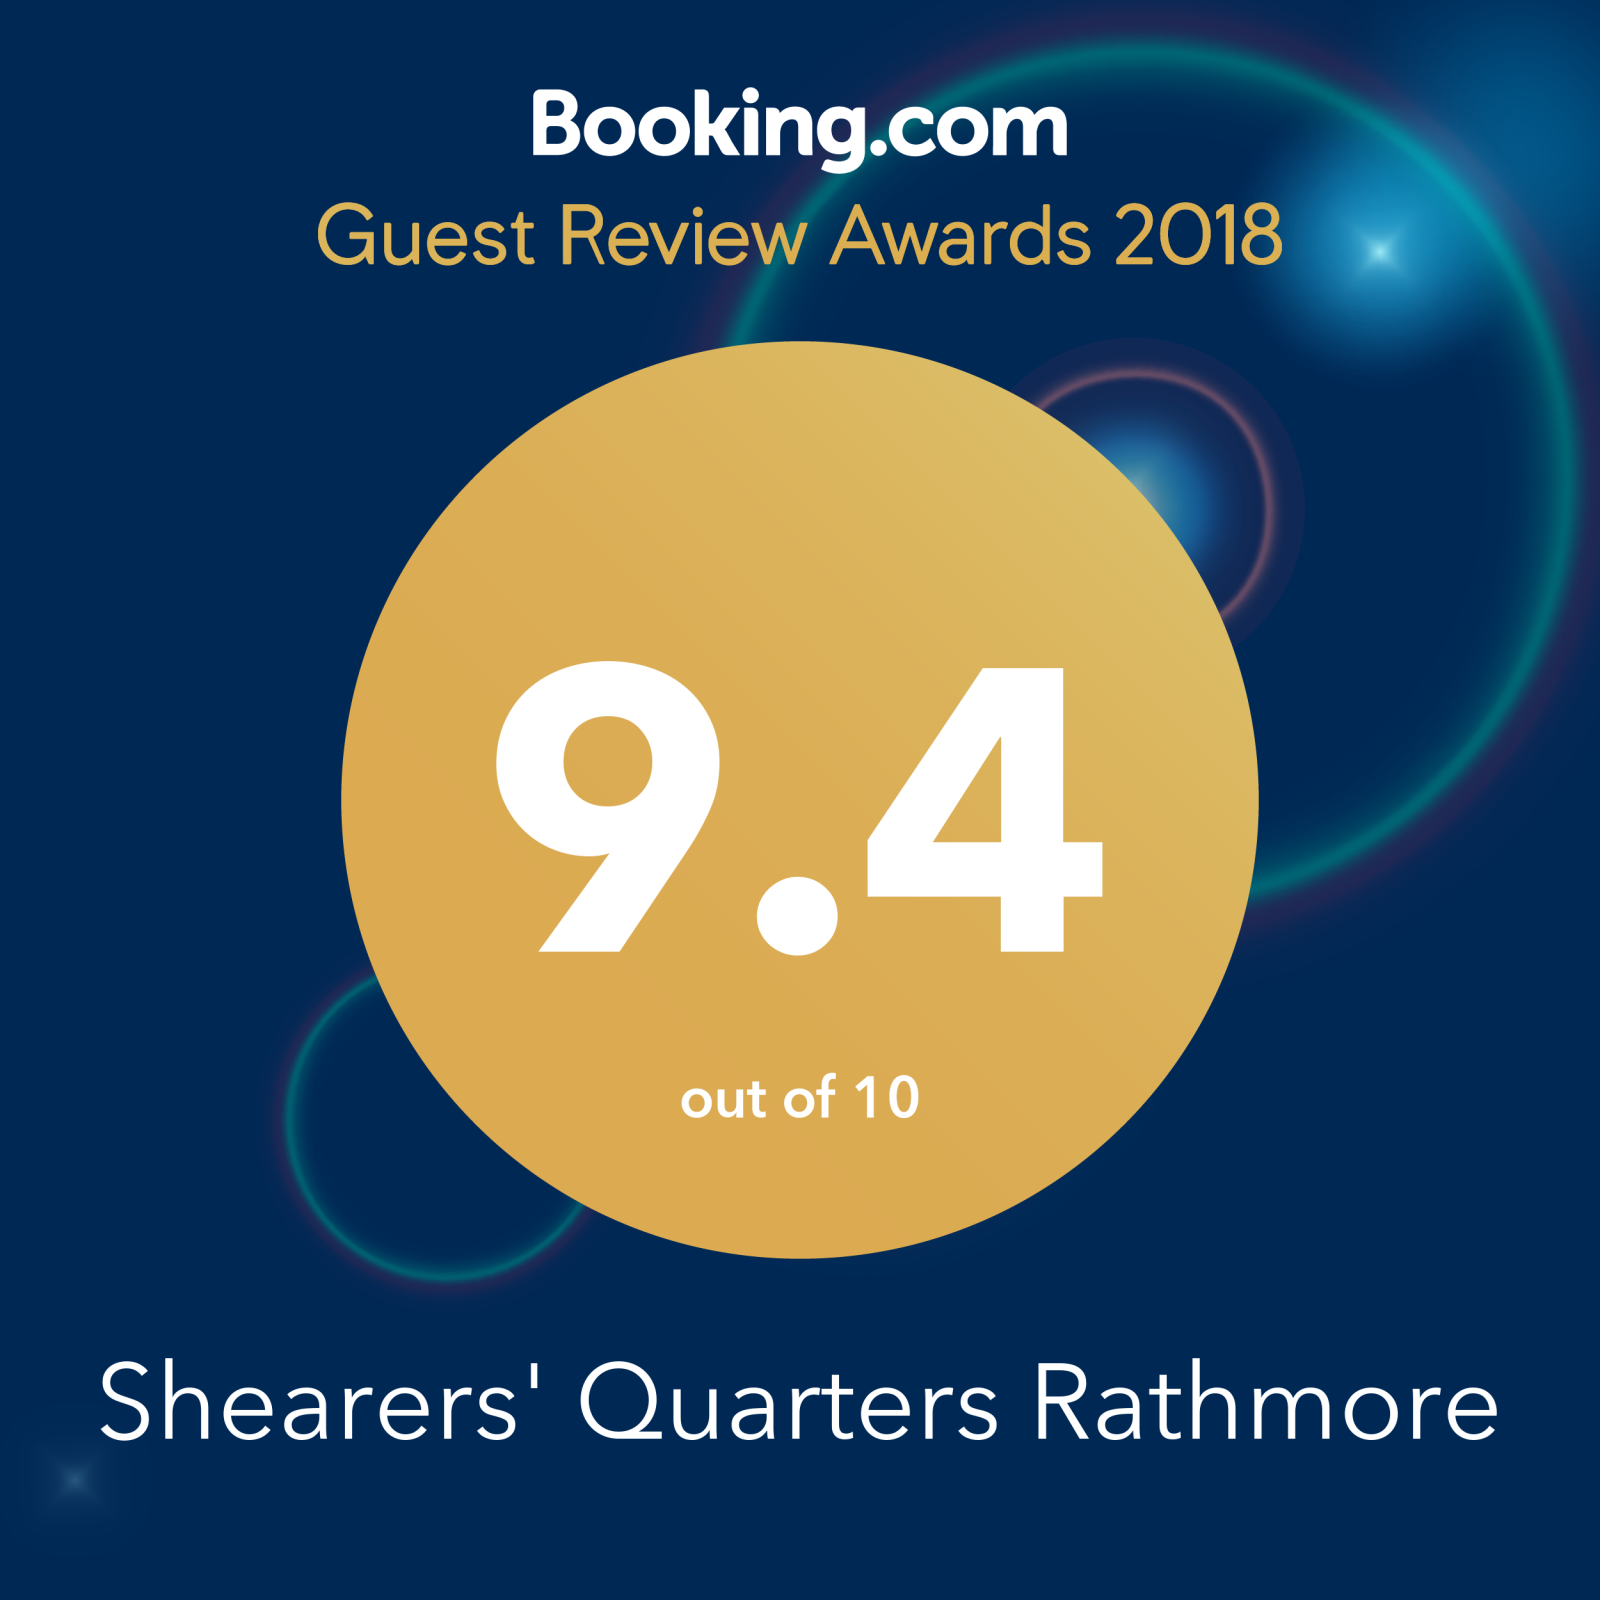 shearers quarters booking.com award